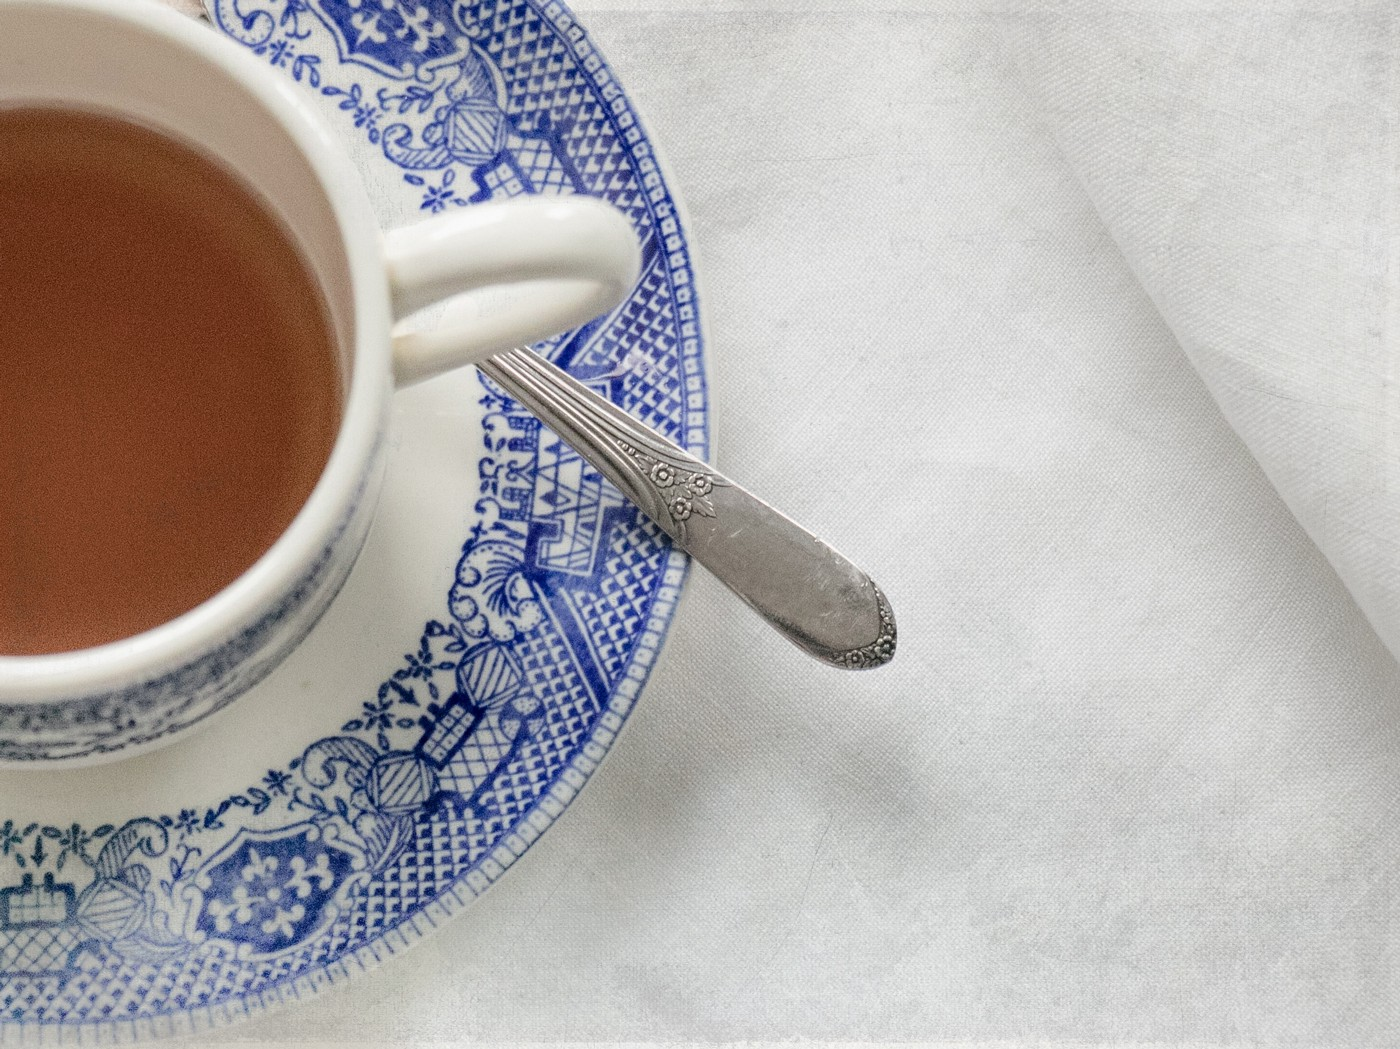 Tea cups, saucers and spoons all make great props for characters in conversation to move around unnecessarily.